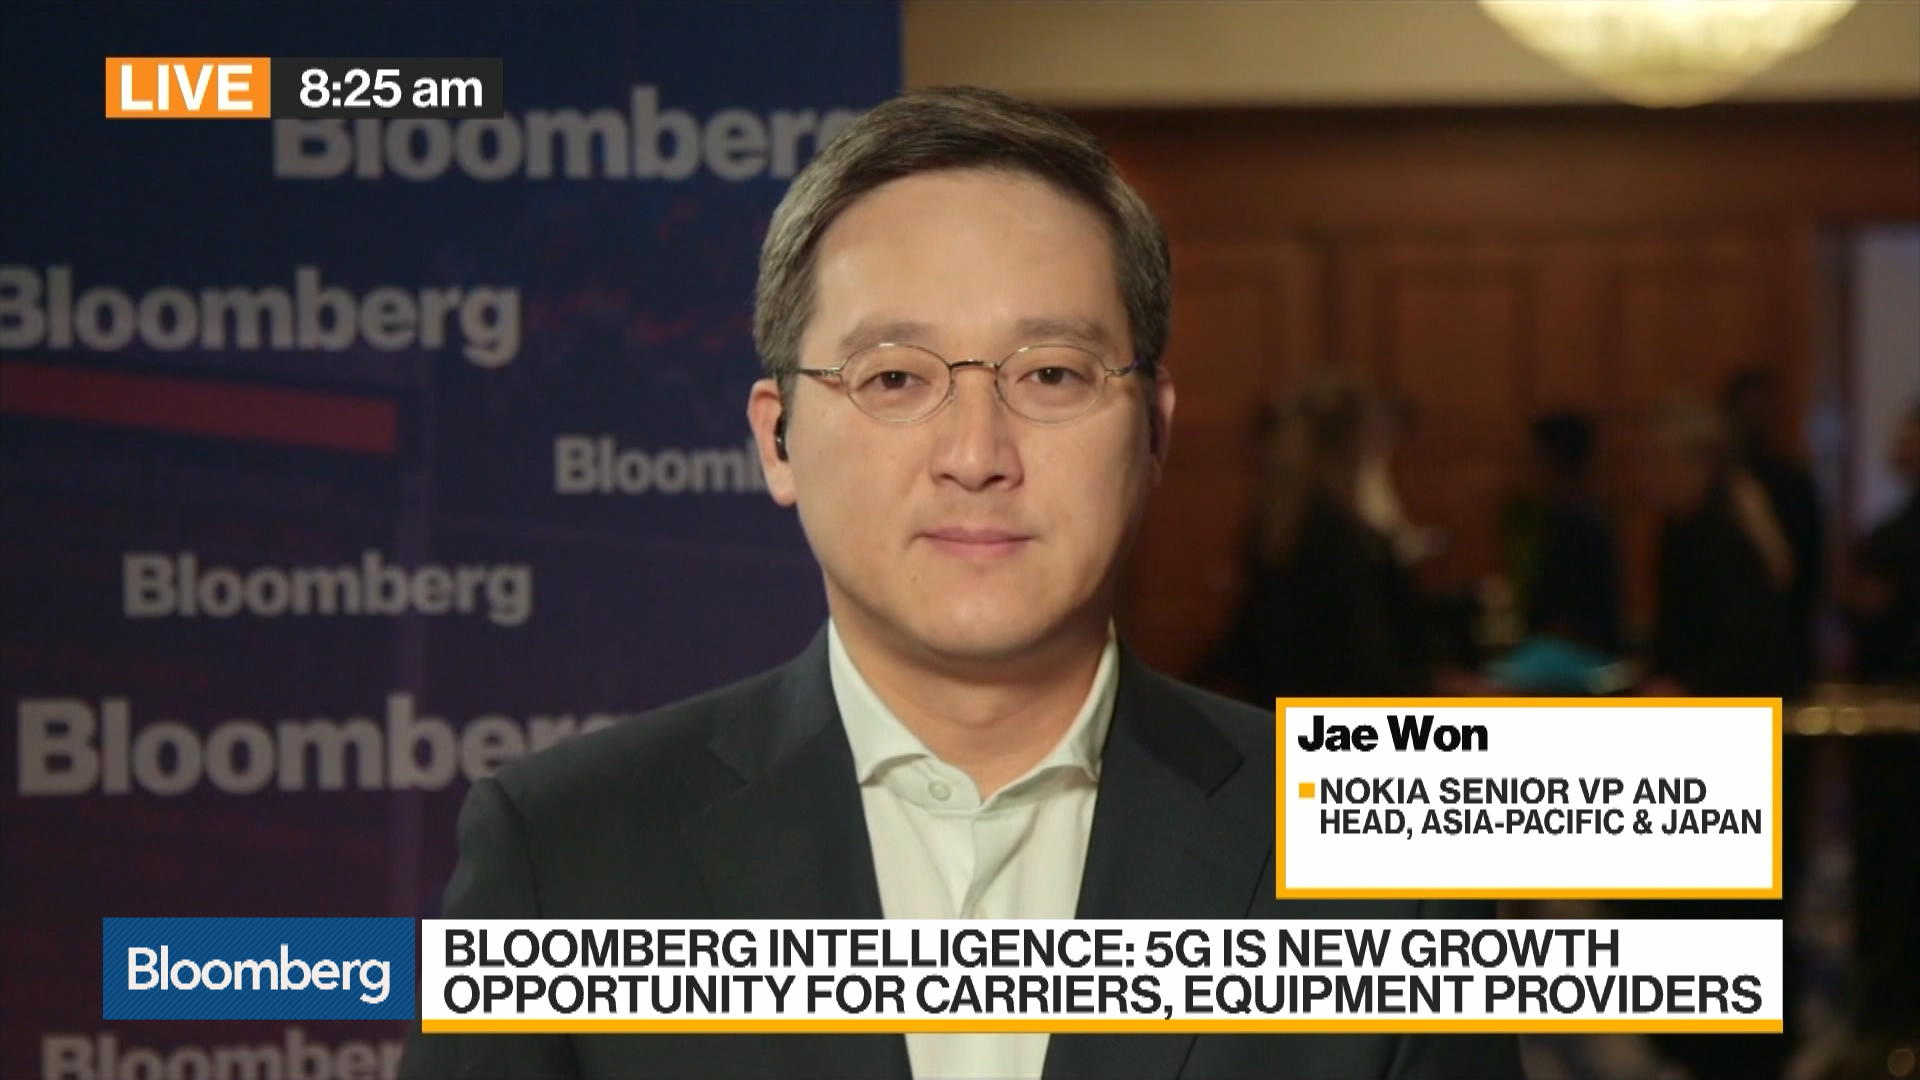 Jae Won, Head of Asia Pacific and Japan at Nokia, on 5G, Strategy